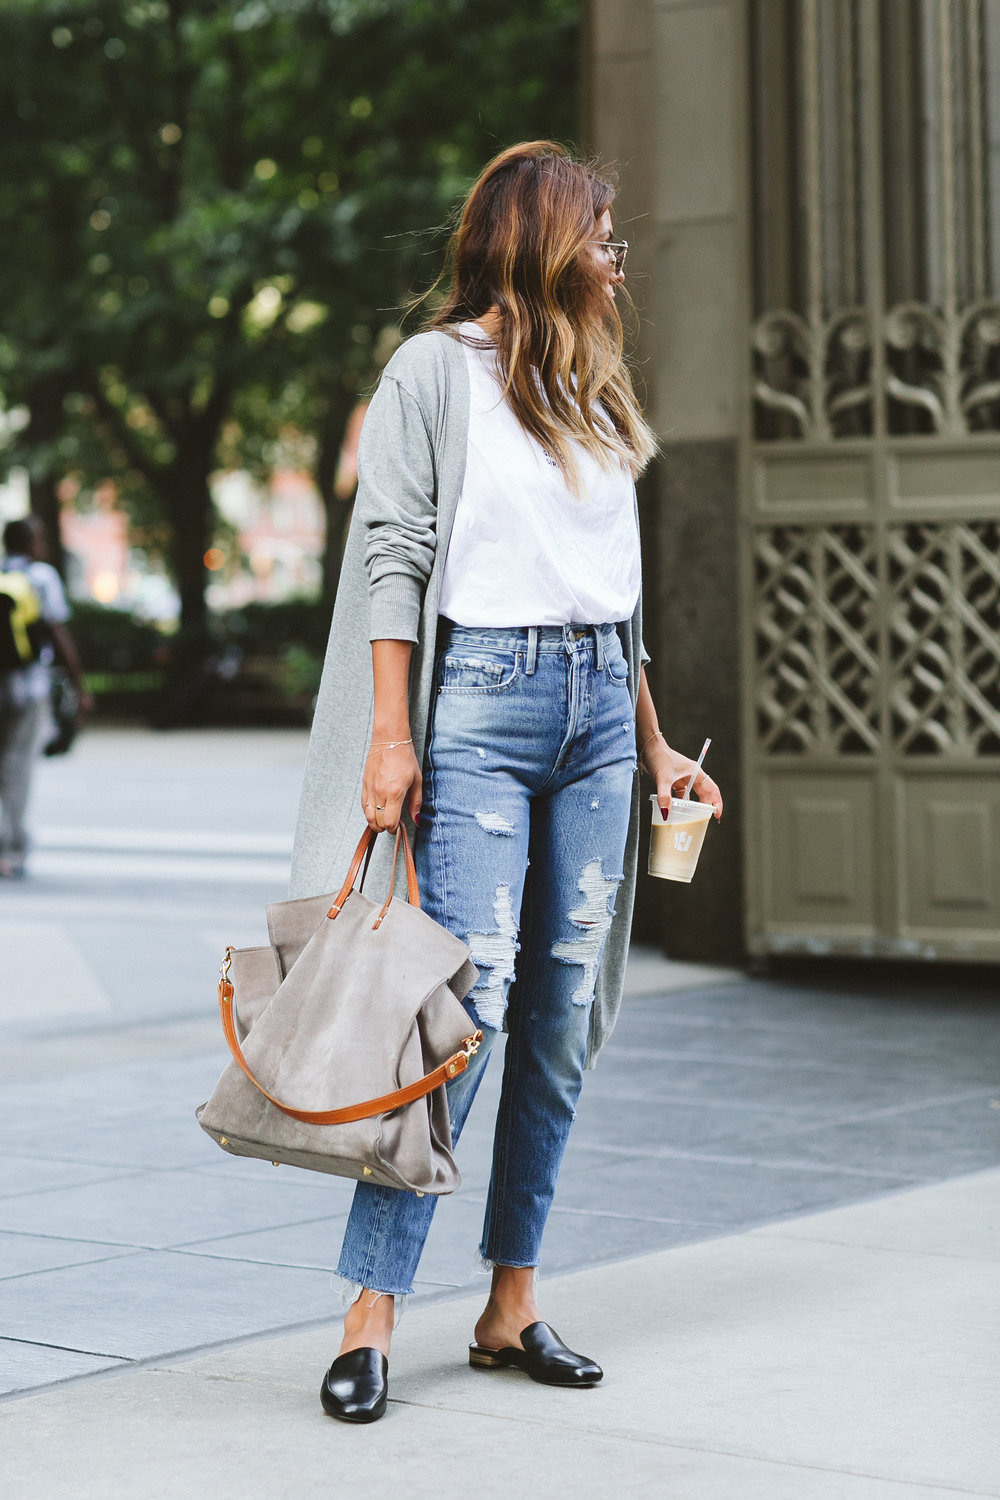 how to wear slides with jeans, high-waist jeans for petite girls, everyday pursuits